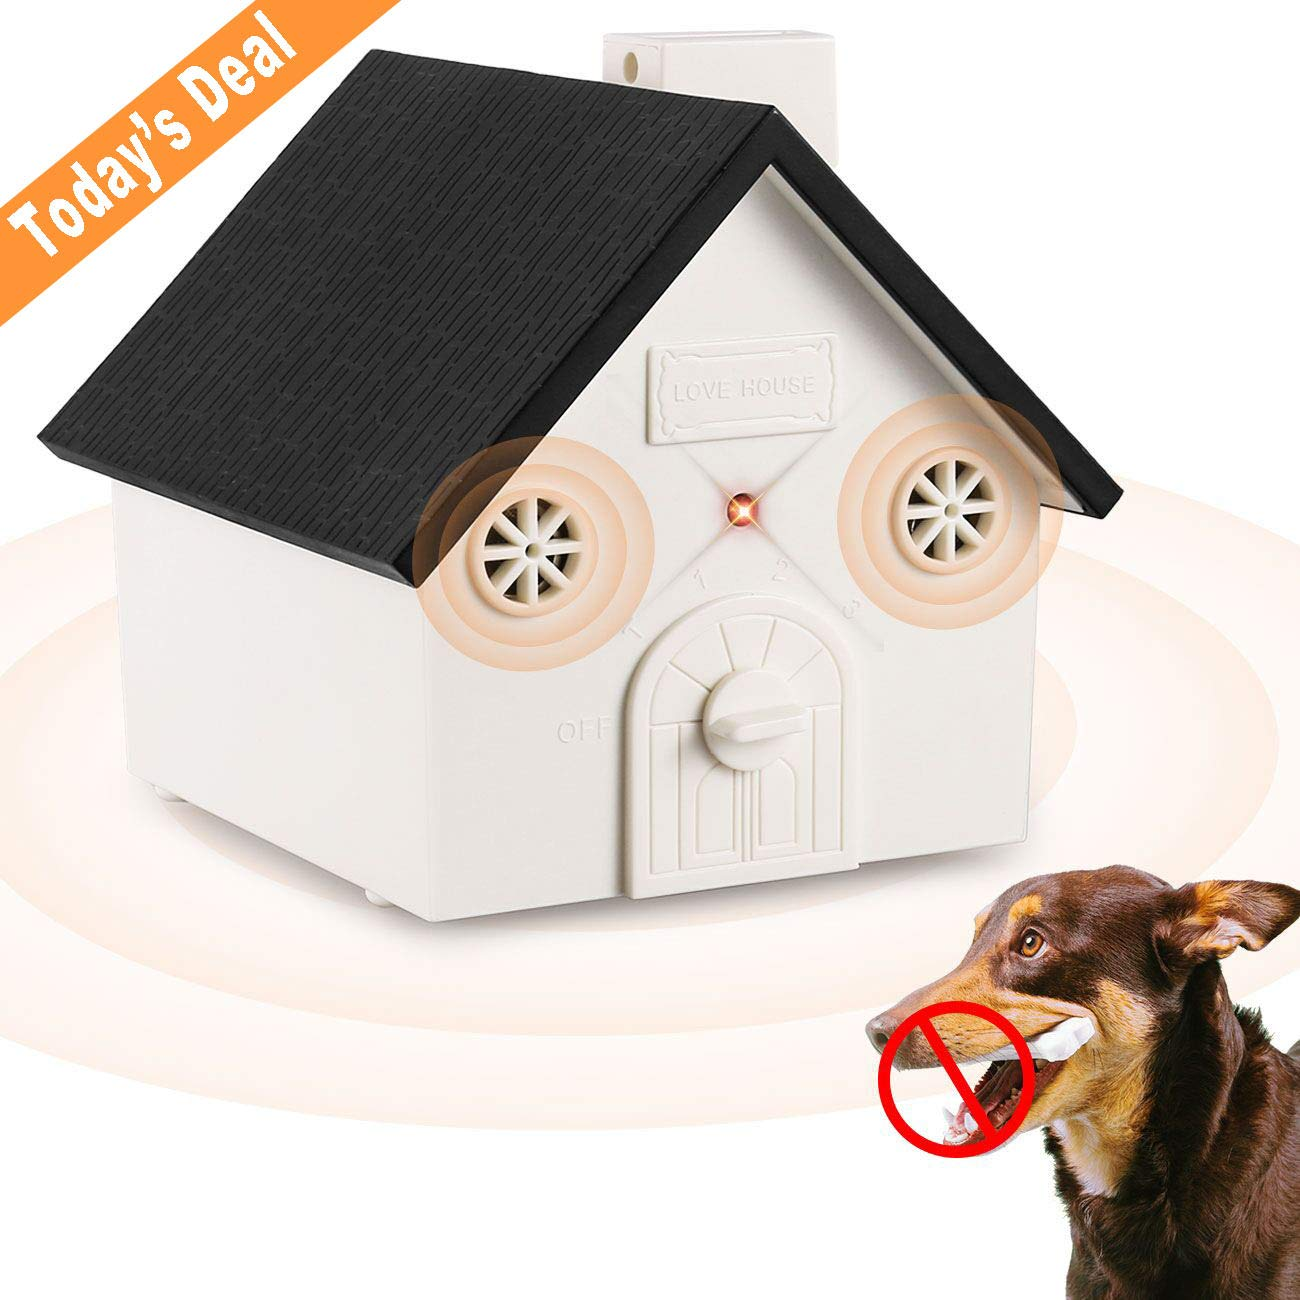 Elenest Anti Barking Device, 2018 New Bark Box Outdoor Dog Repellent Device with Adjustable Ultrasonic Level Control Safe for Small Medium Large Dogs, Sonic Bark Deterrents, Bark Control Device